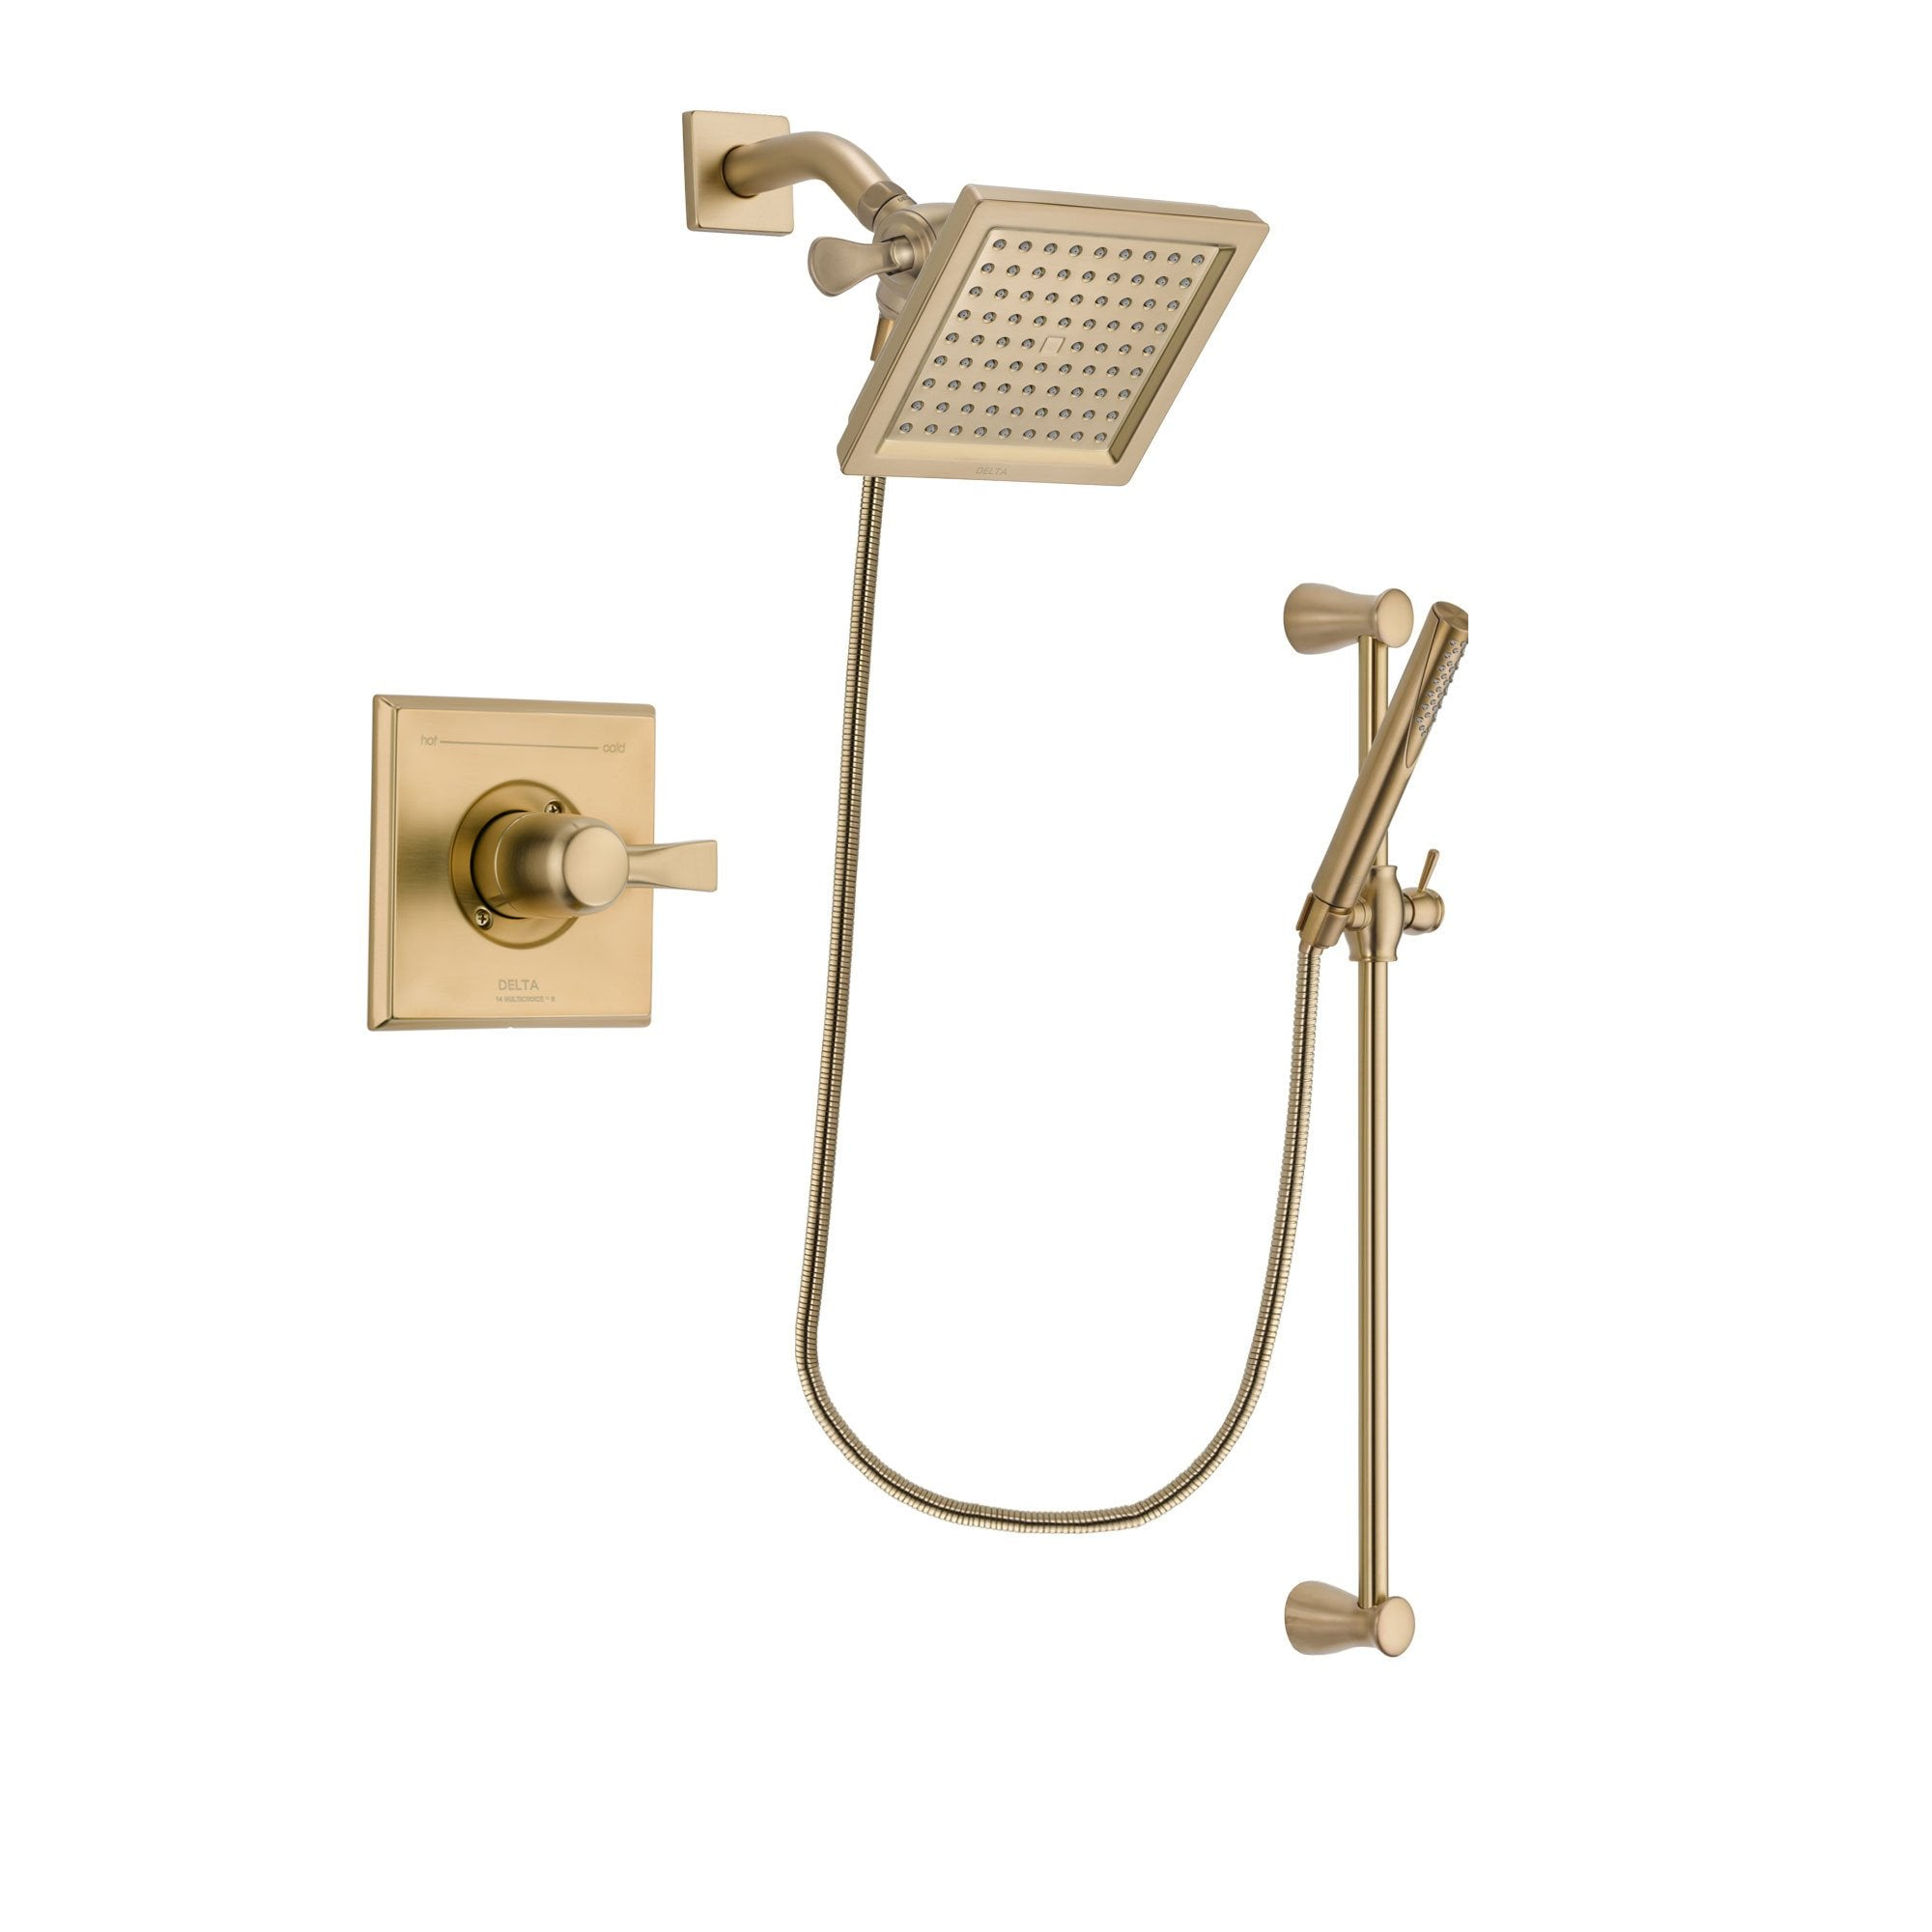 Delta Dryden Champagne Bronze Shower Faucet System with Hand Shower DSP3962V